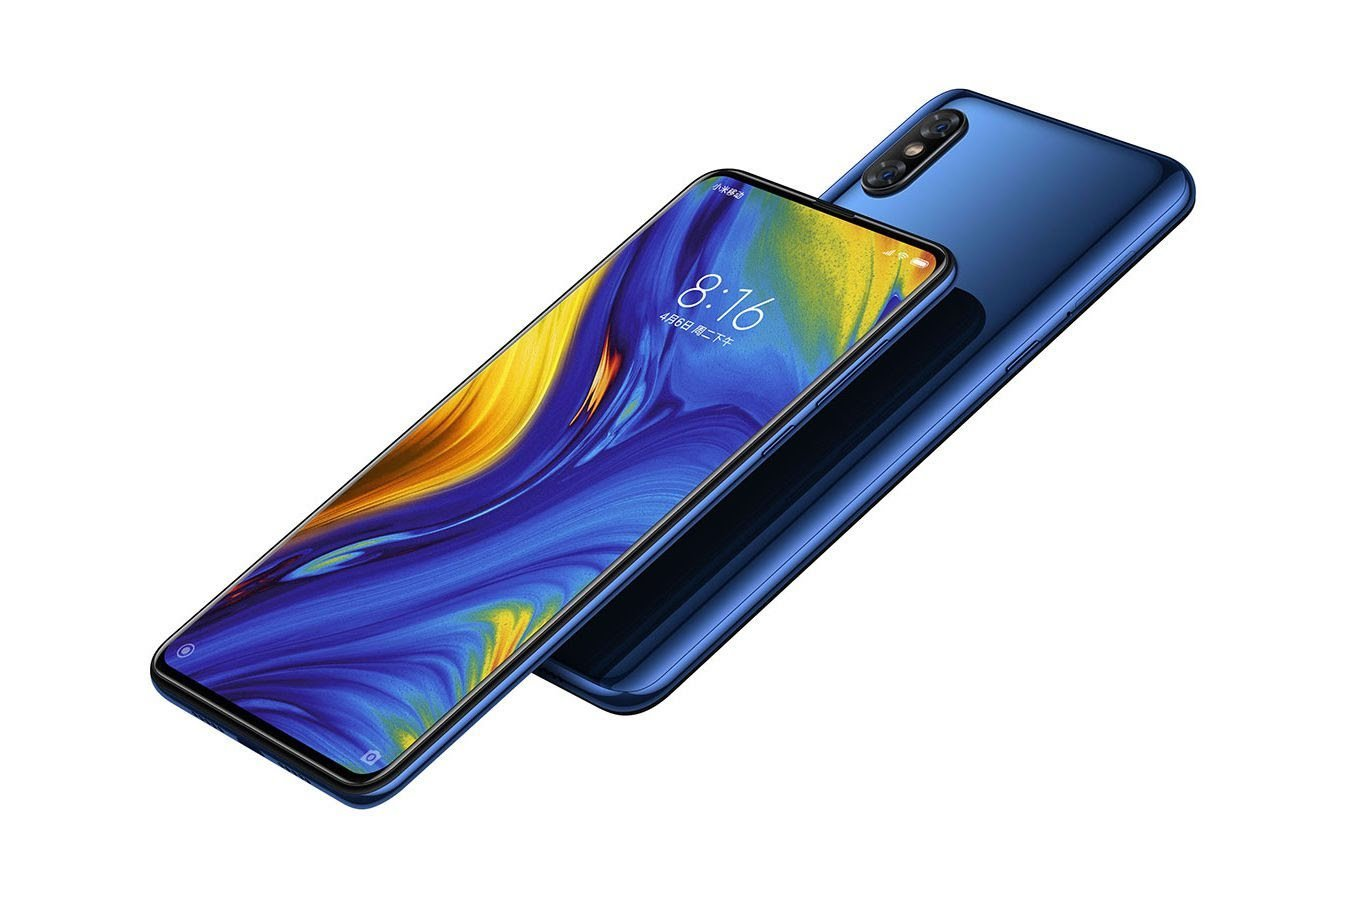 Xiaomi announce new Mi Mix 3 offer coming soon